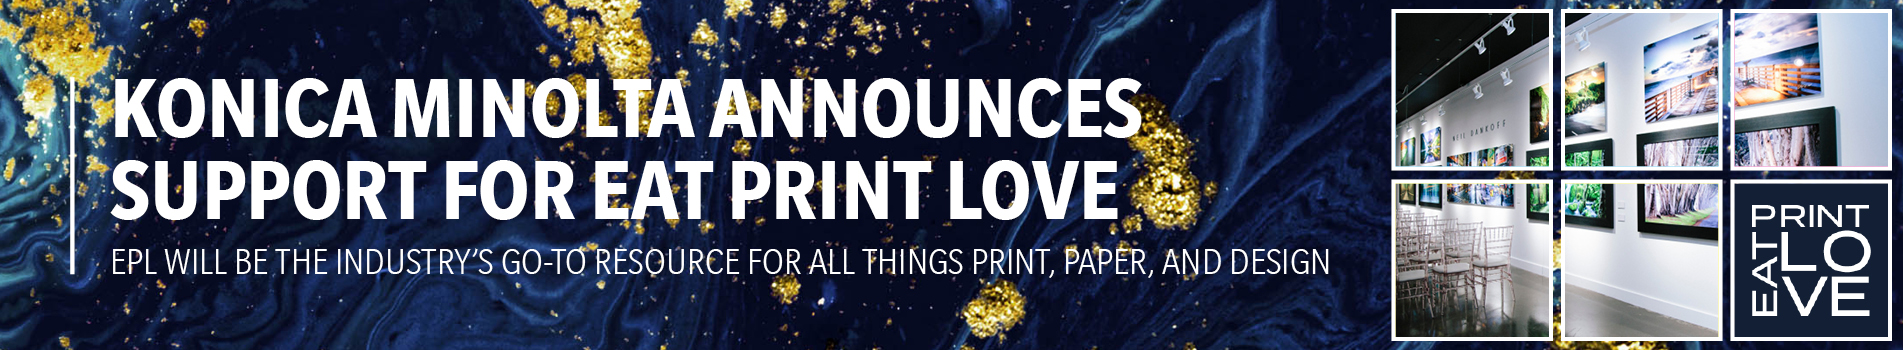 Konica Minolta Announces Support for Eat Print Love